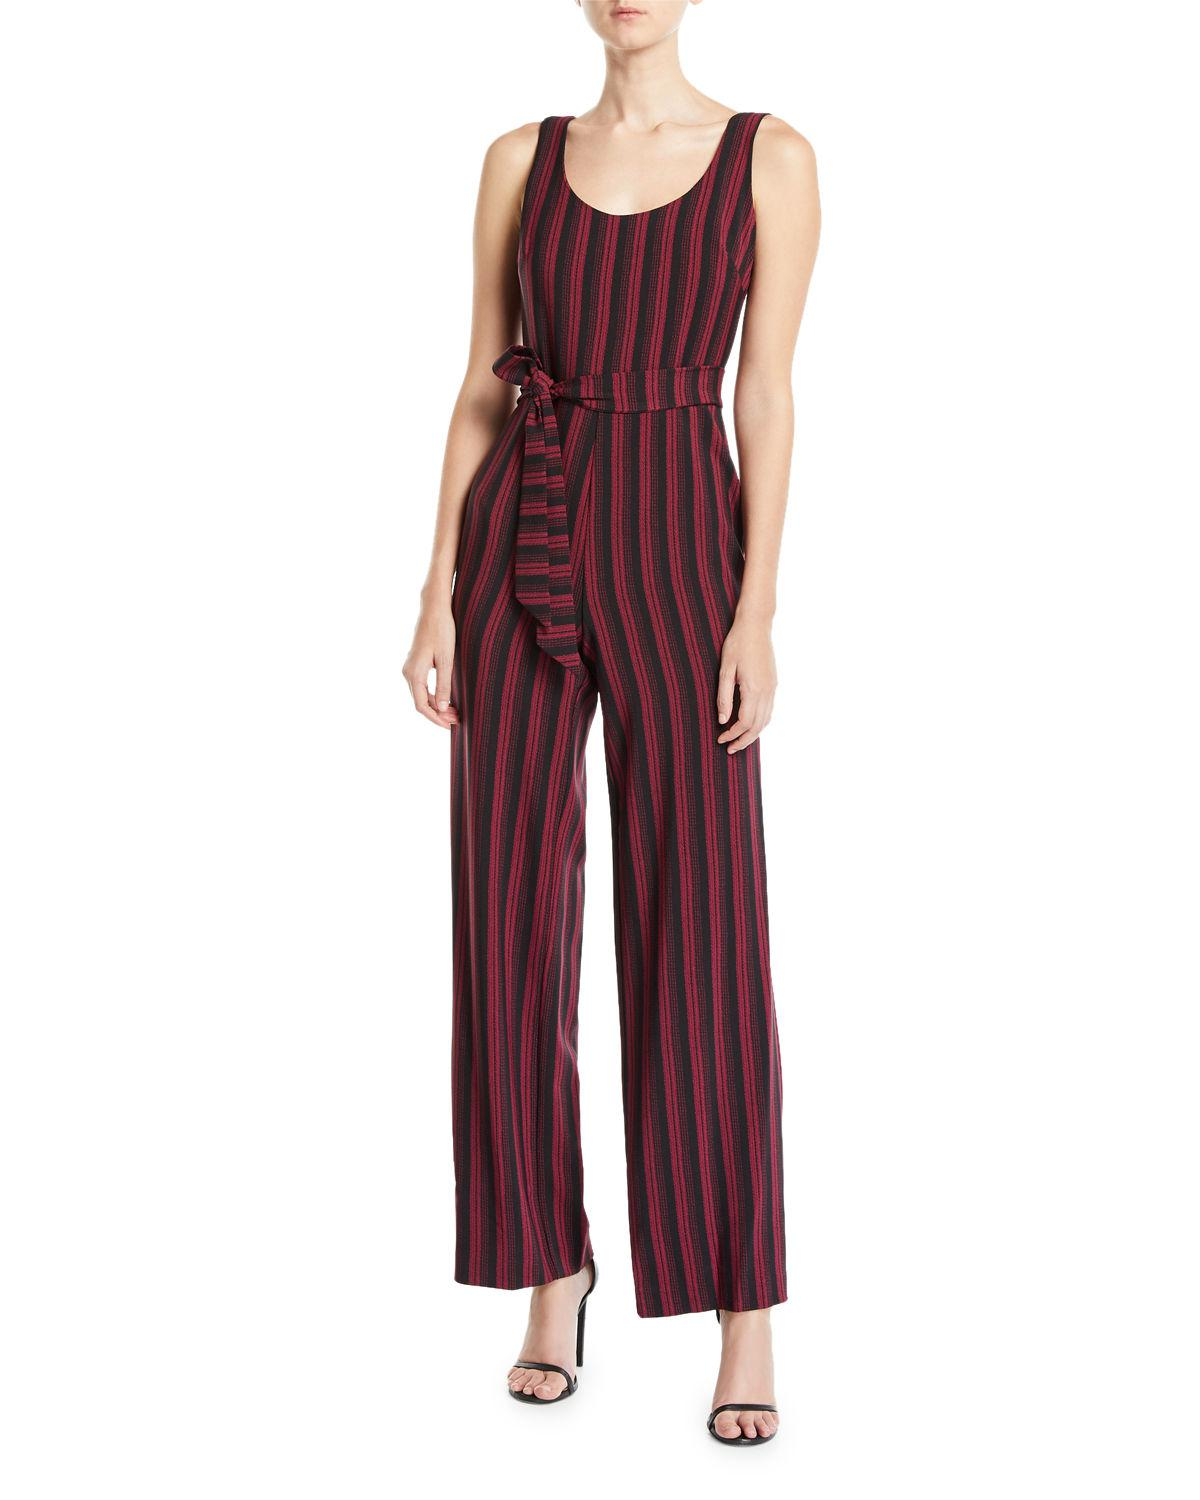 4b2c0f82d02a Lyst - Karl Lagerfeld Striped Belted Jumpsuit in Black - Save 34%